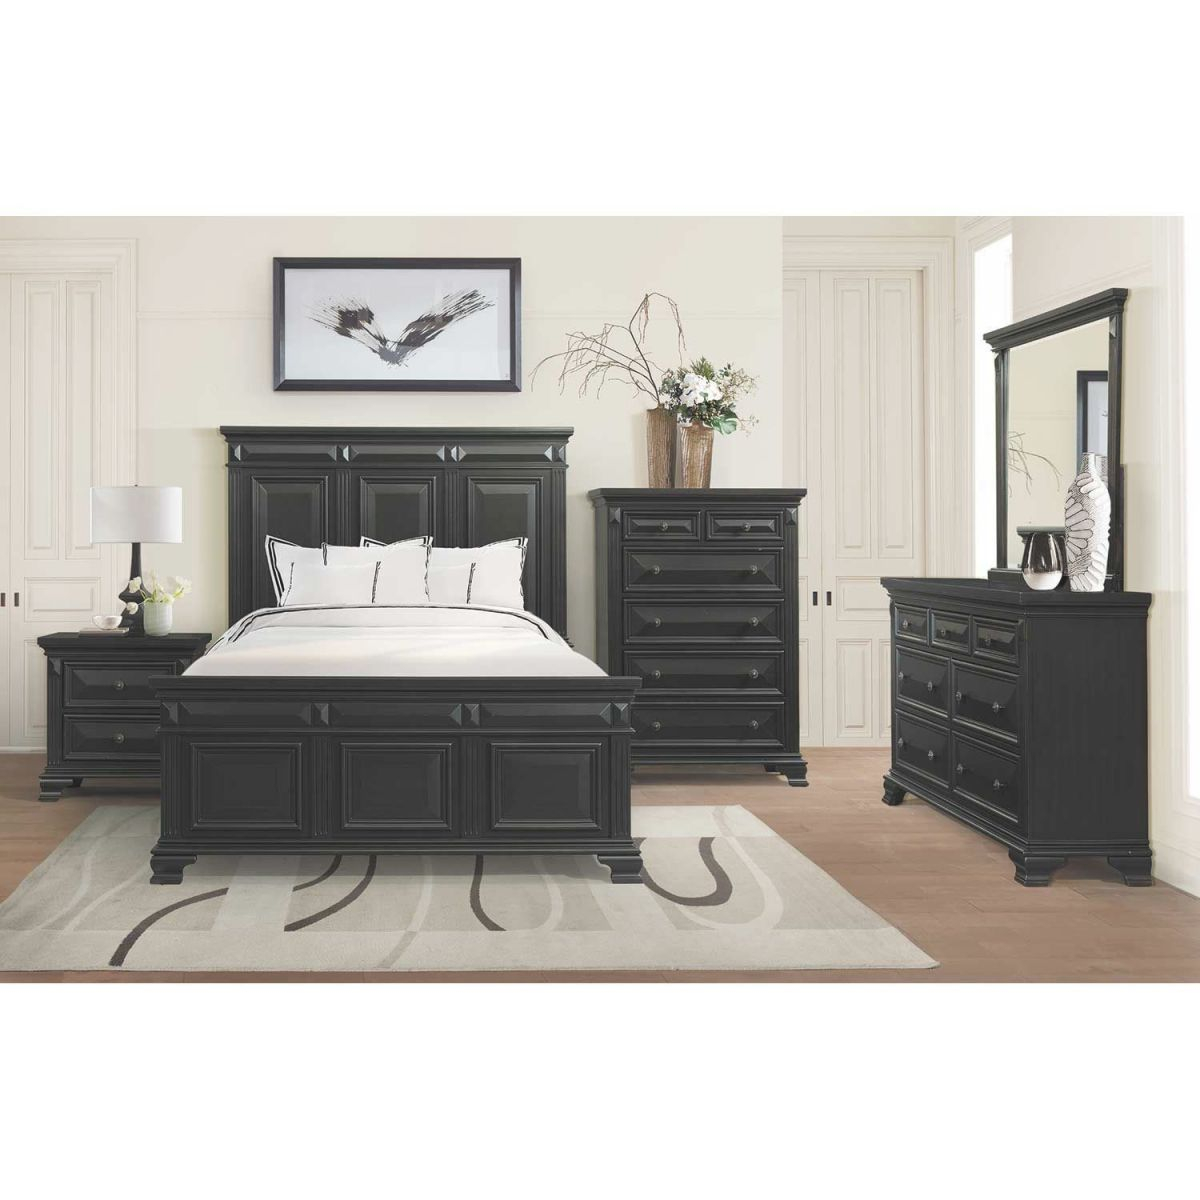 Calloway 5 Piece Bedroom Set within Bedroom Set With Desk